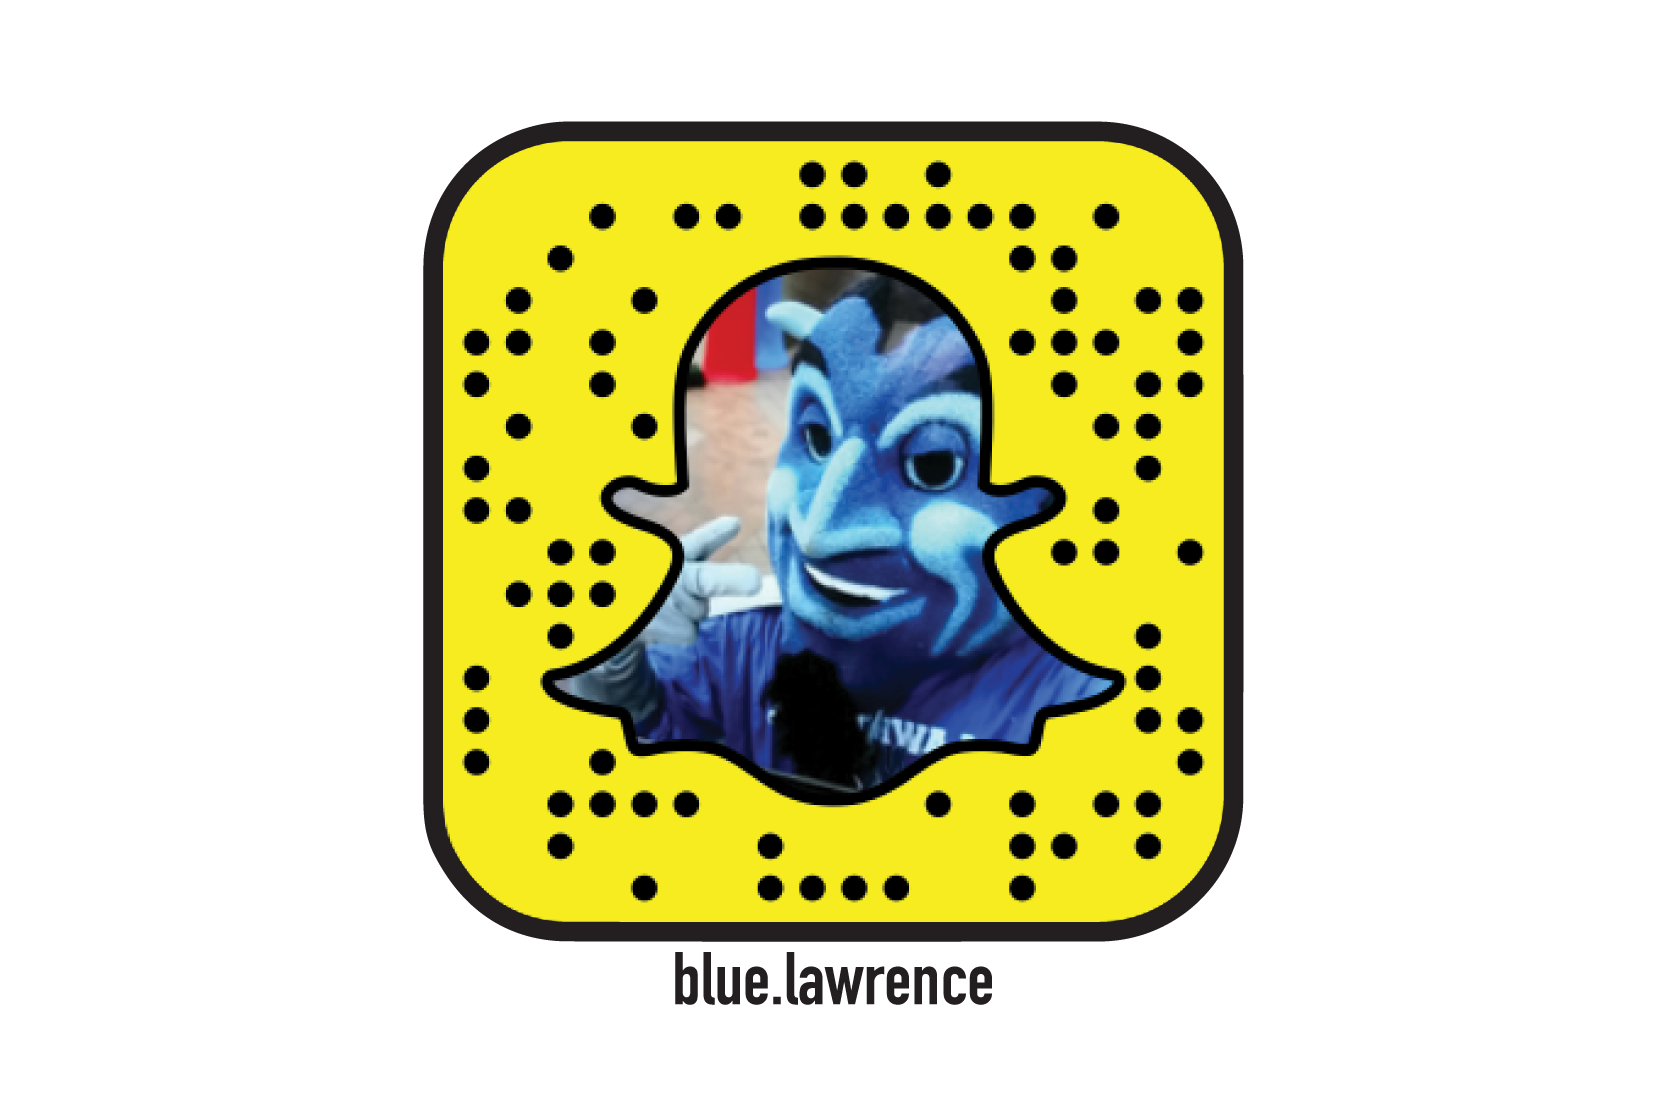 blue.lawrence snapchat